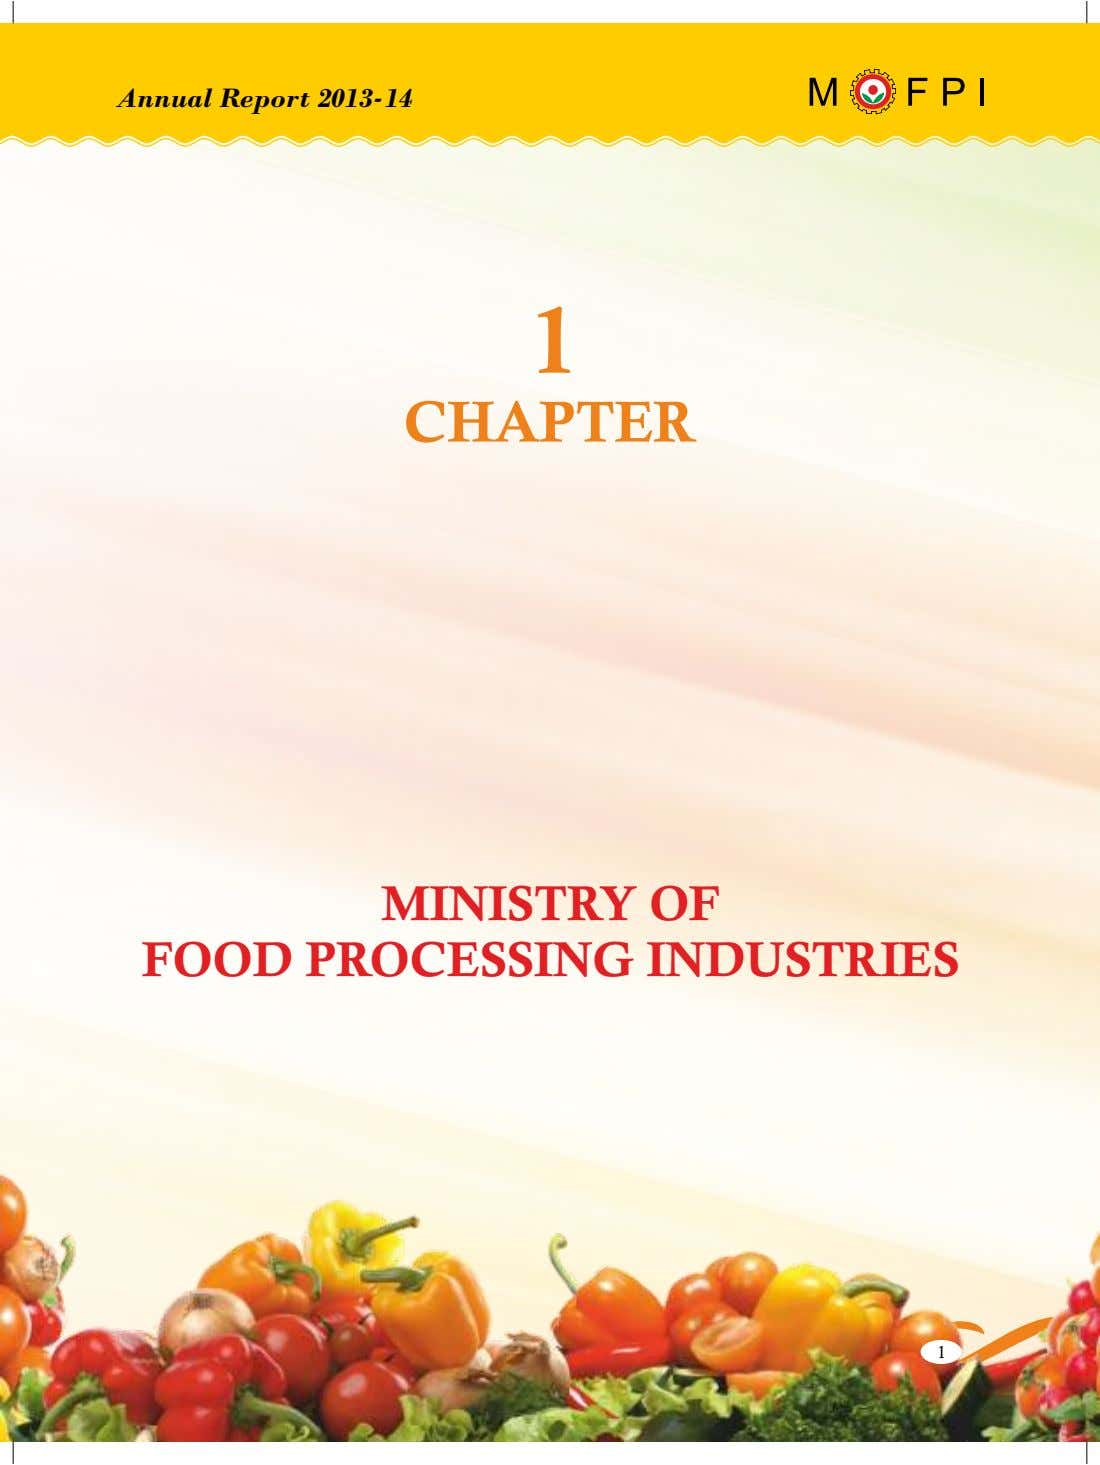 Annual Report 2013-14 1 CHAPTER MINISTRY OF FOOD PROCESSING INDUSTRIES 1 MINISTRY OF FOOD PROCESSING